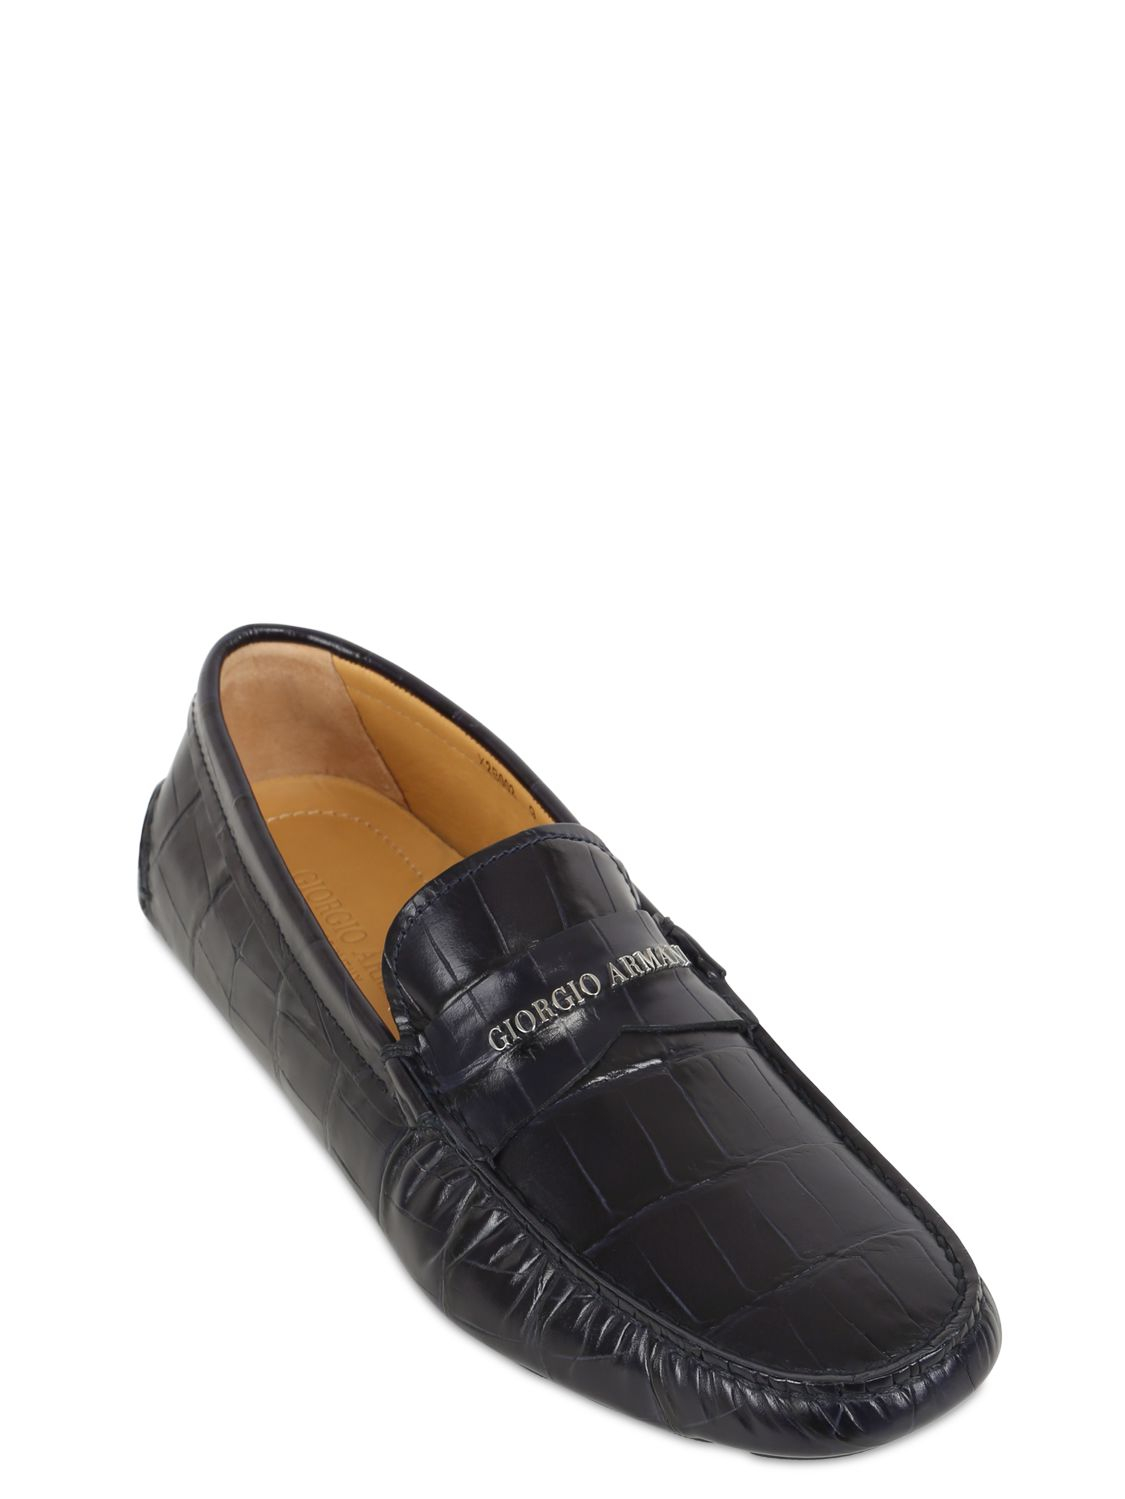 armani leather loafers, OFF 75%,Buy!